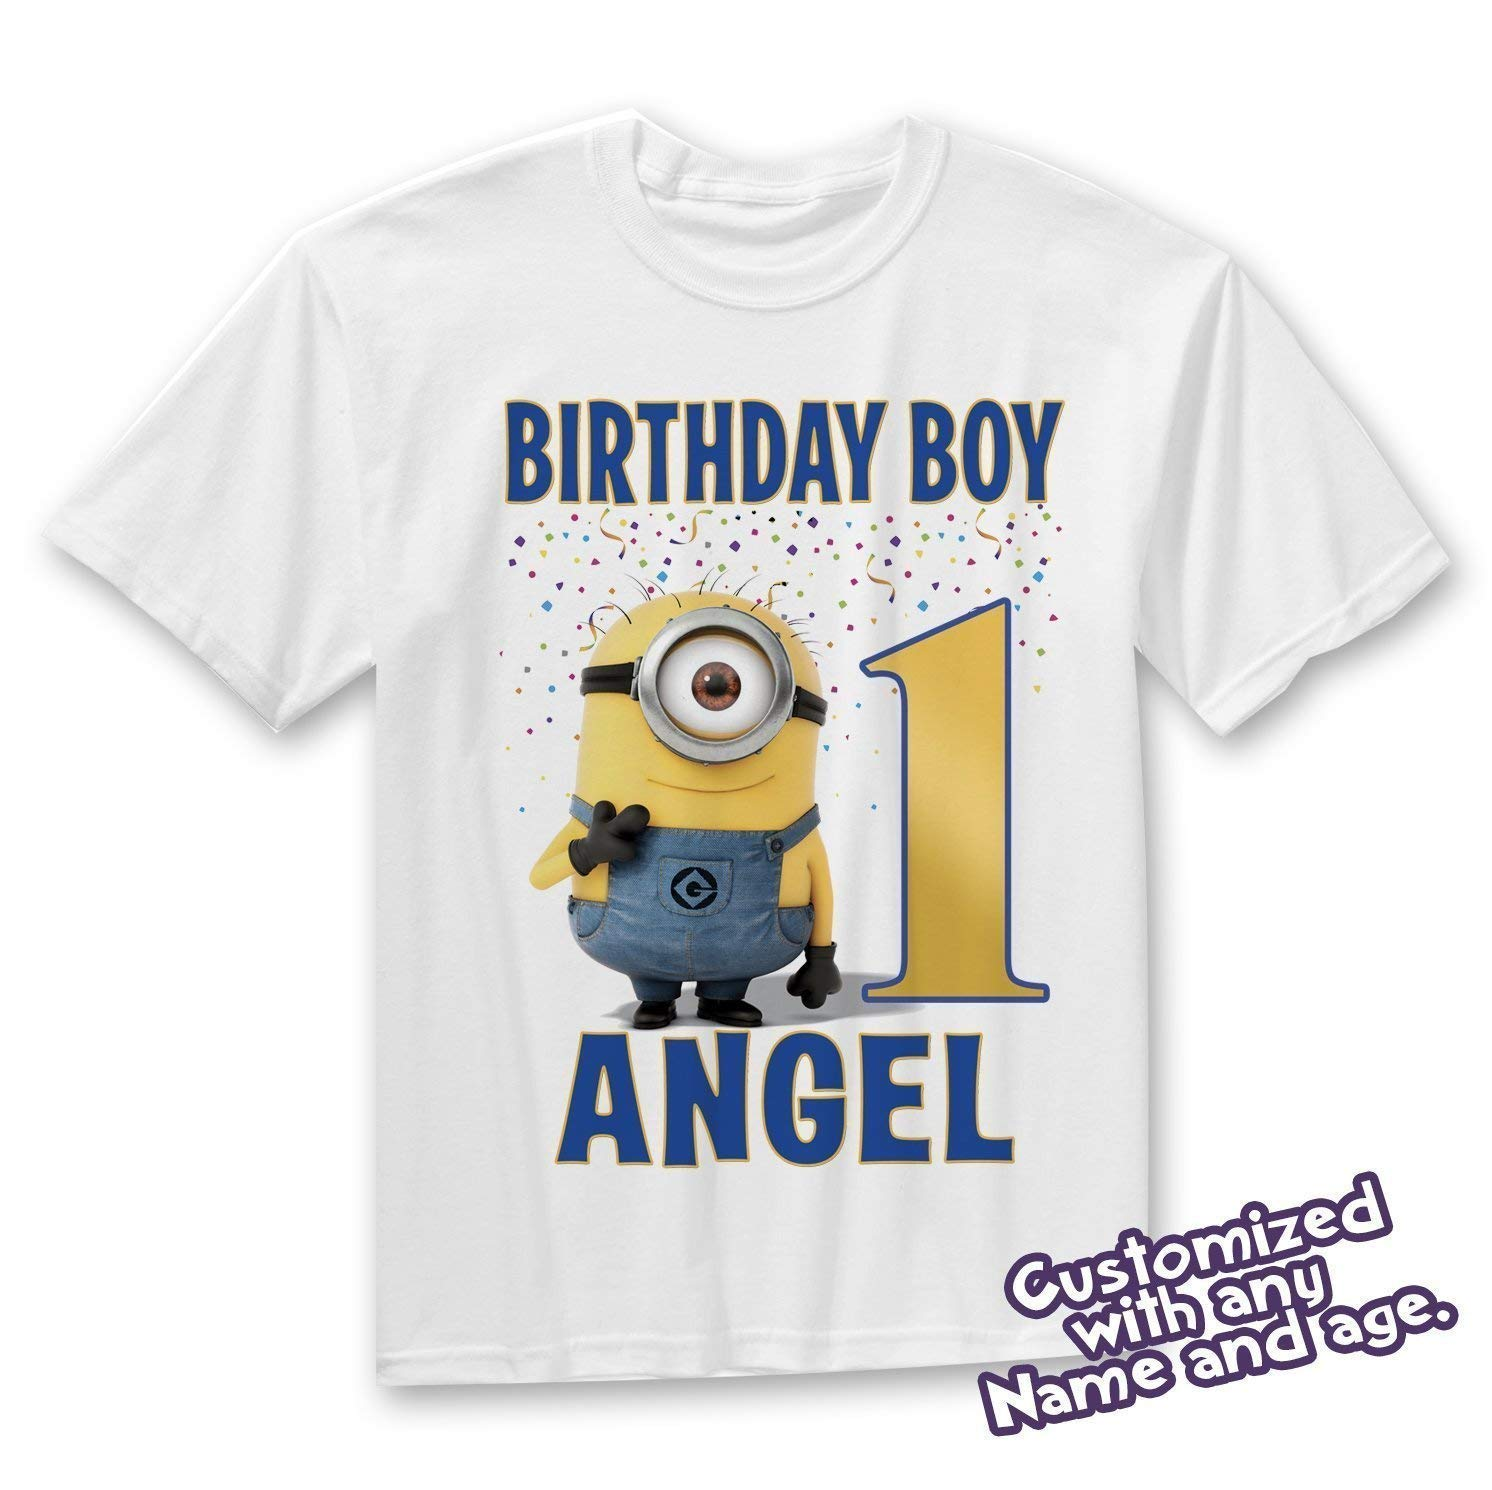 Amazon Customized Minions Birthday Shirt Add Name Age Personalized T Handmade